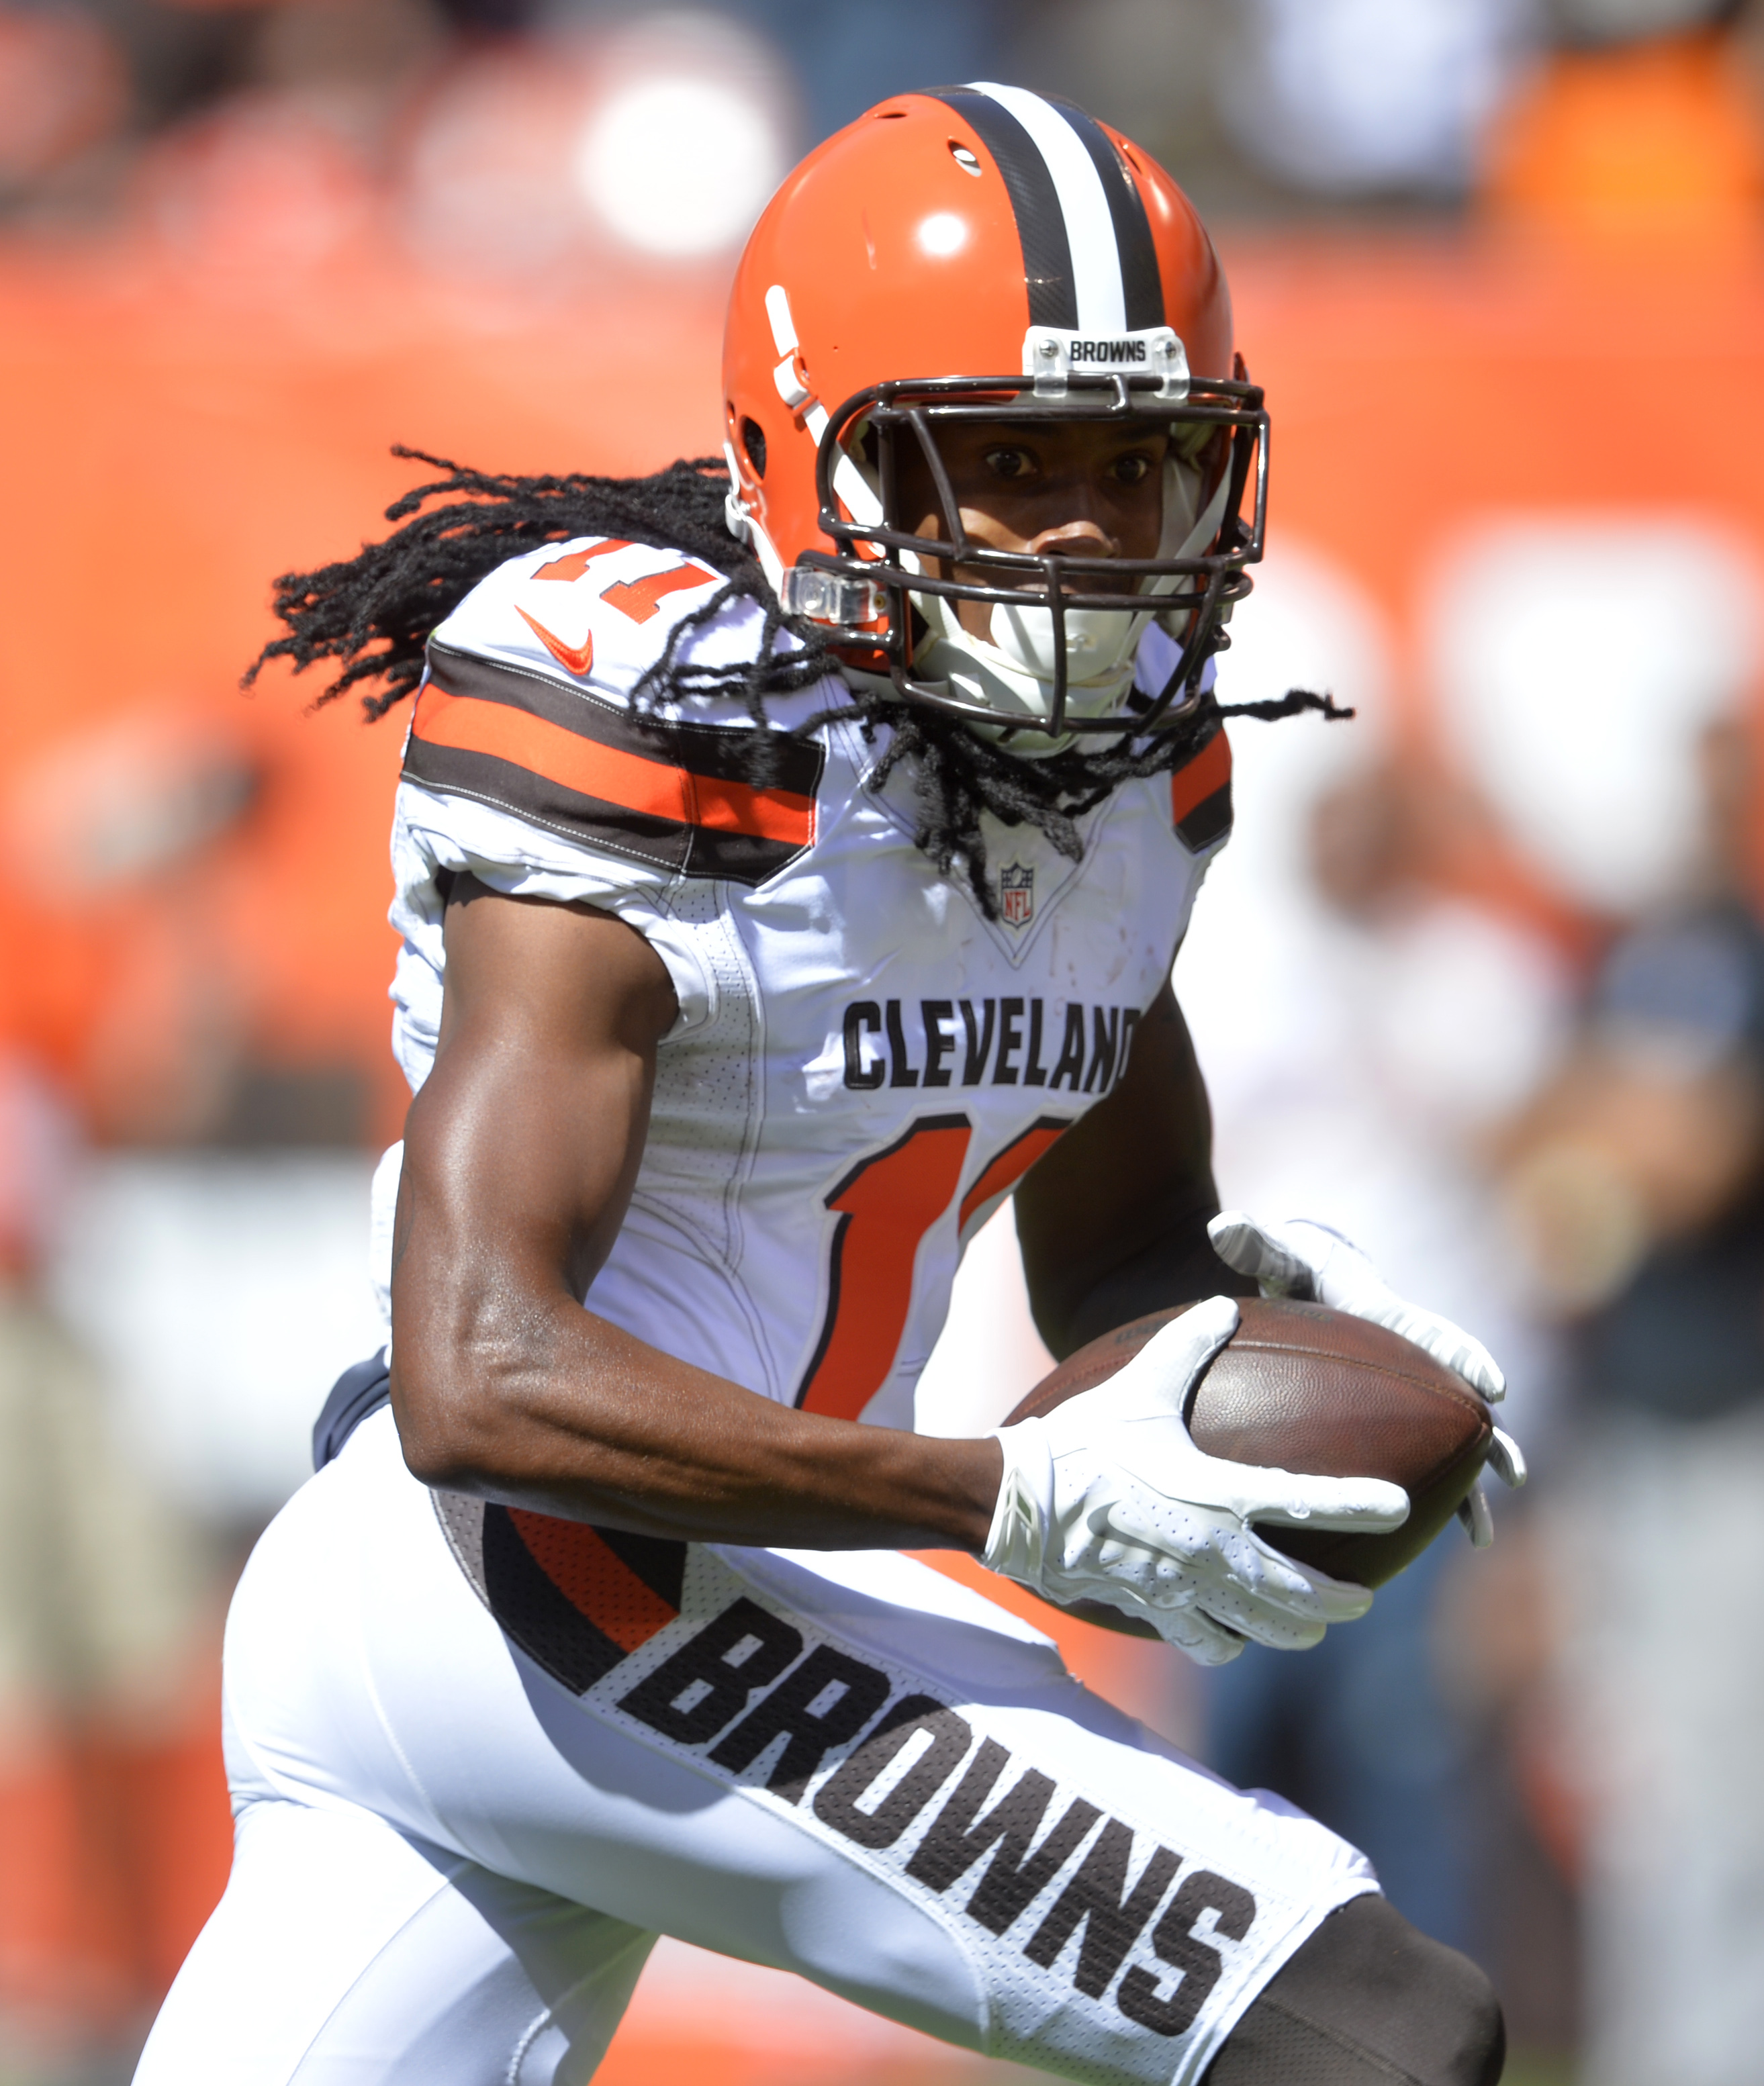 Cleveland Browns wide receiver Travis Benjamin runs for a 60-yard touchdown against the Tennessee Titans during the first half of an NFL football game Sunday, Sept. 20, 2015, in Cleveland. (AP Photo/David Richard)